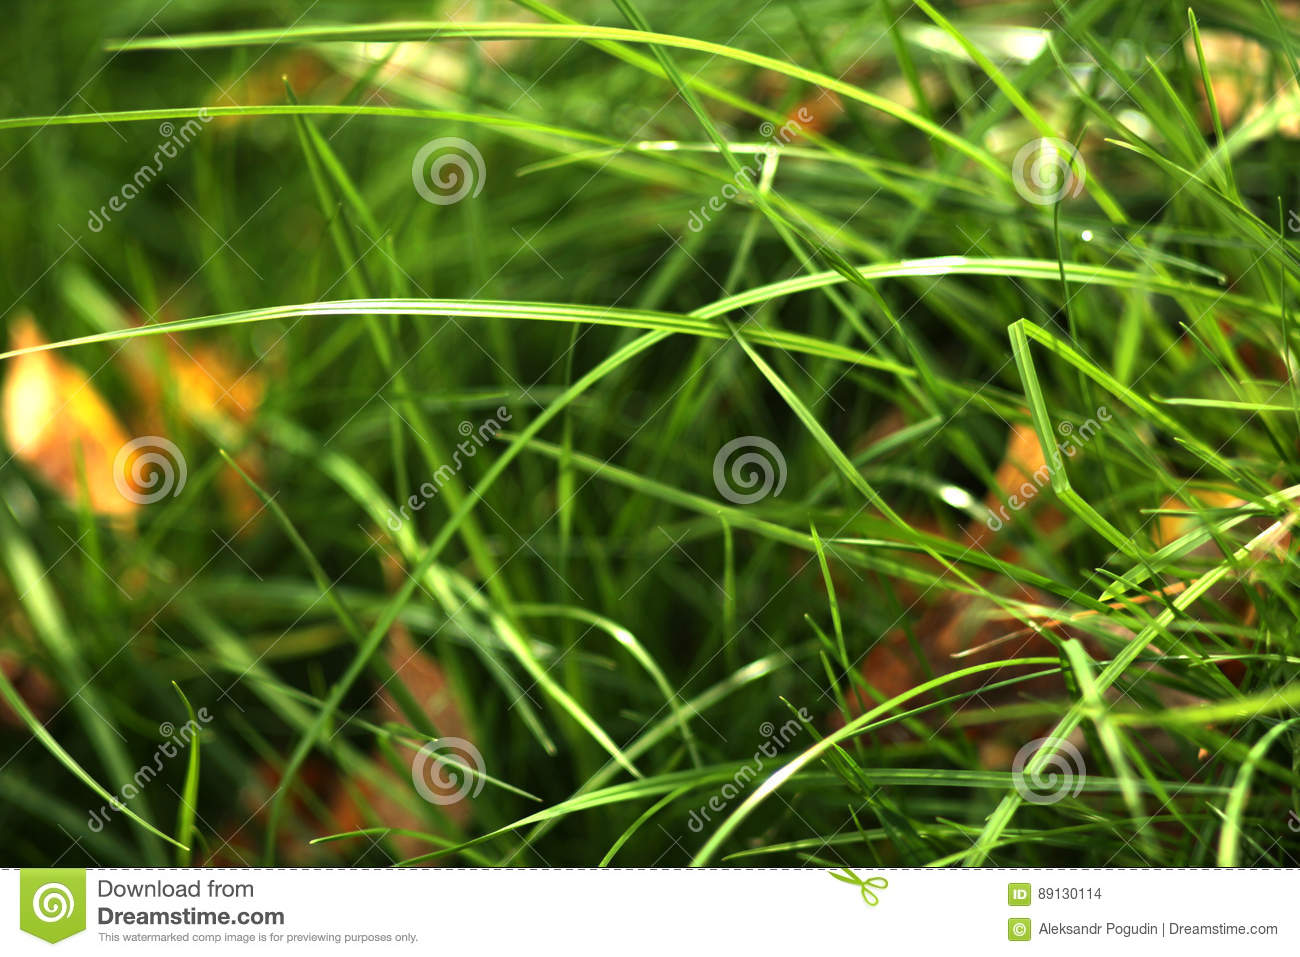 Background of bright green grass with yellow leaves